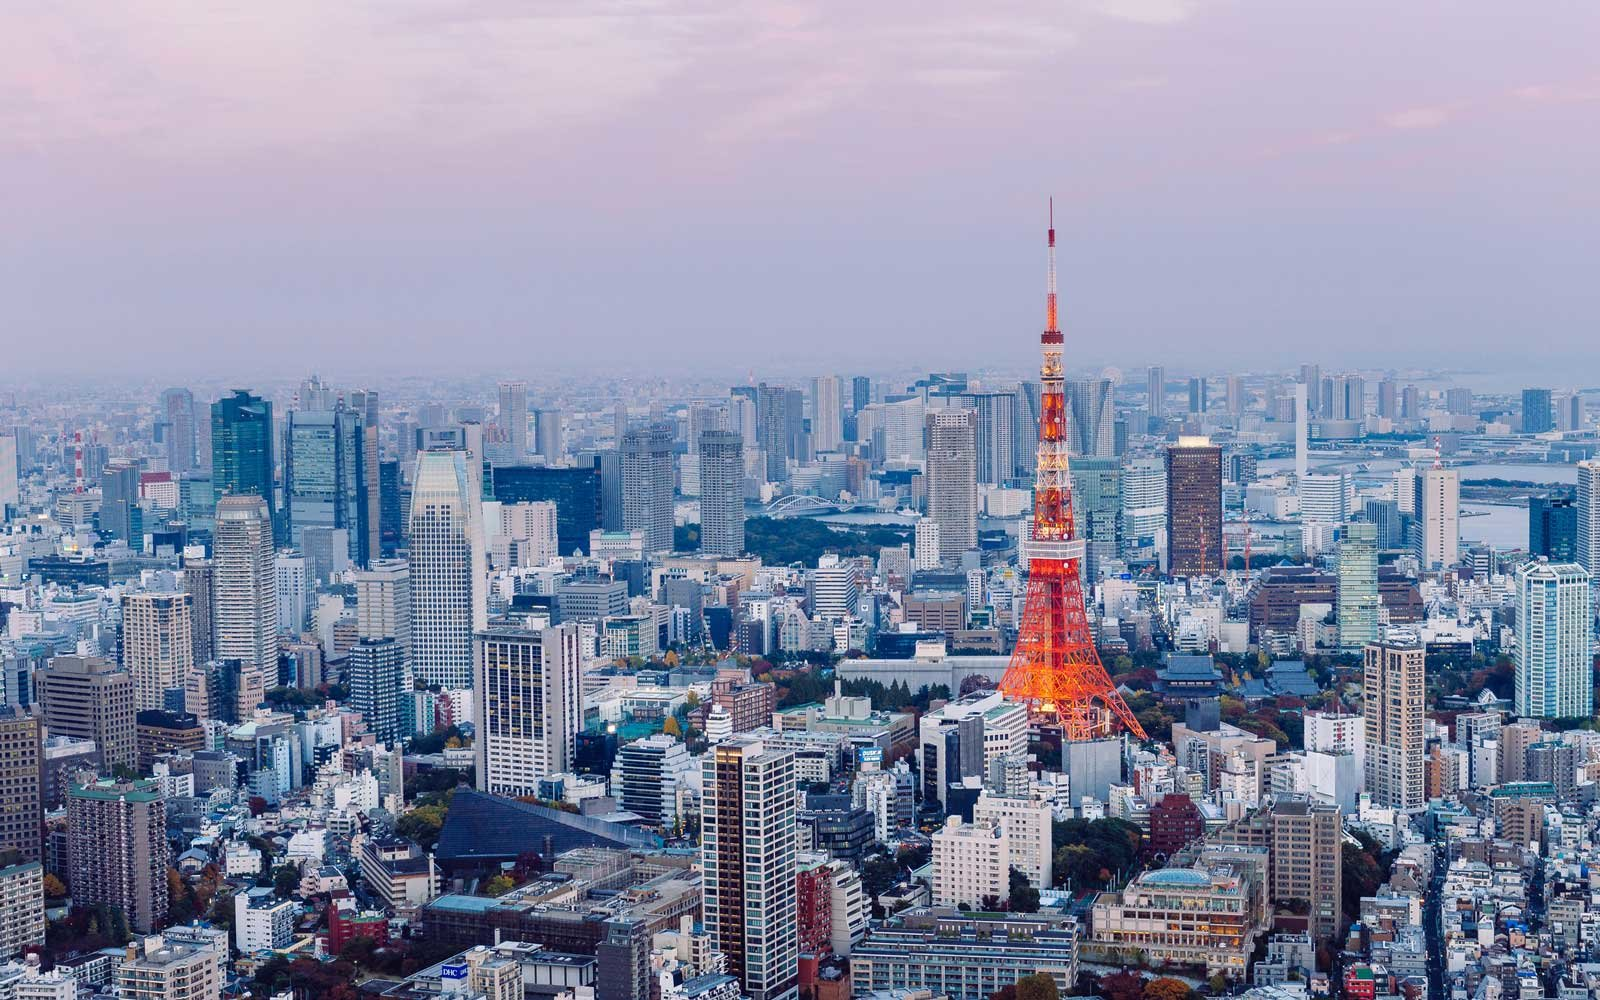 Take a Trip to Tokyo for Only $459 Round-trip